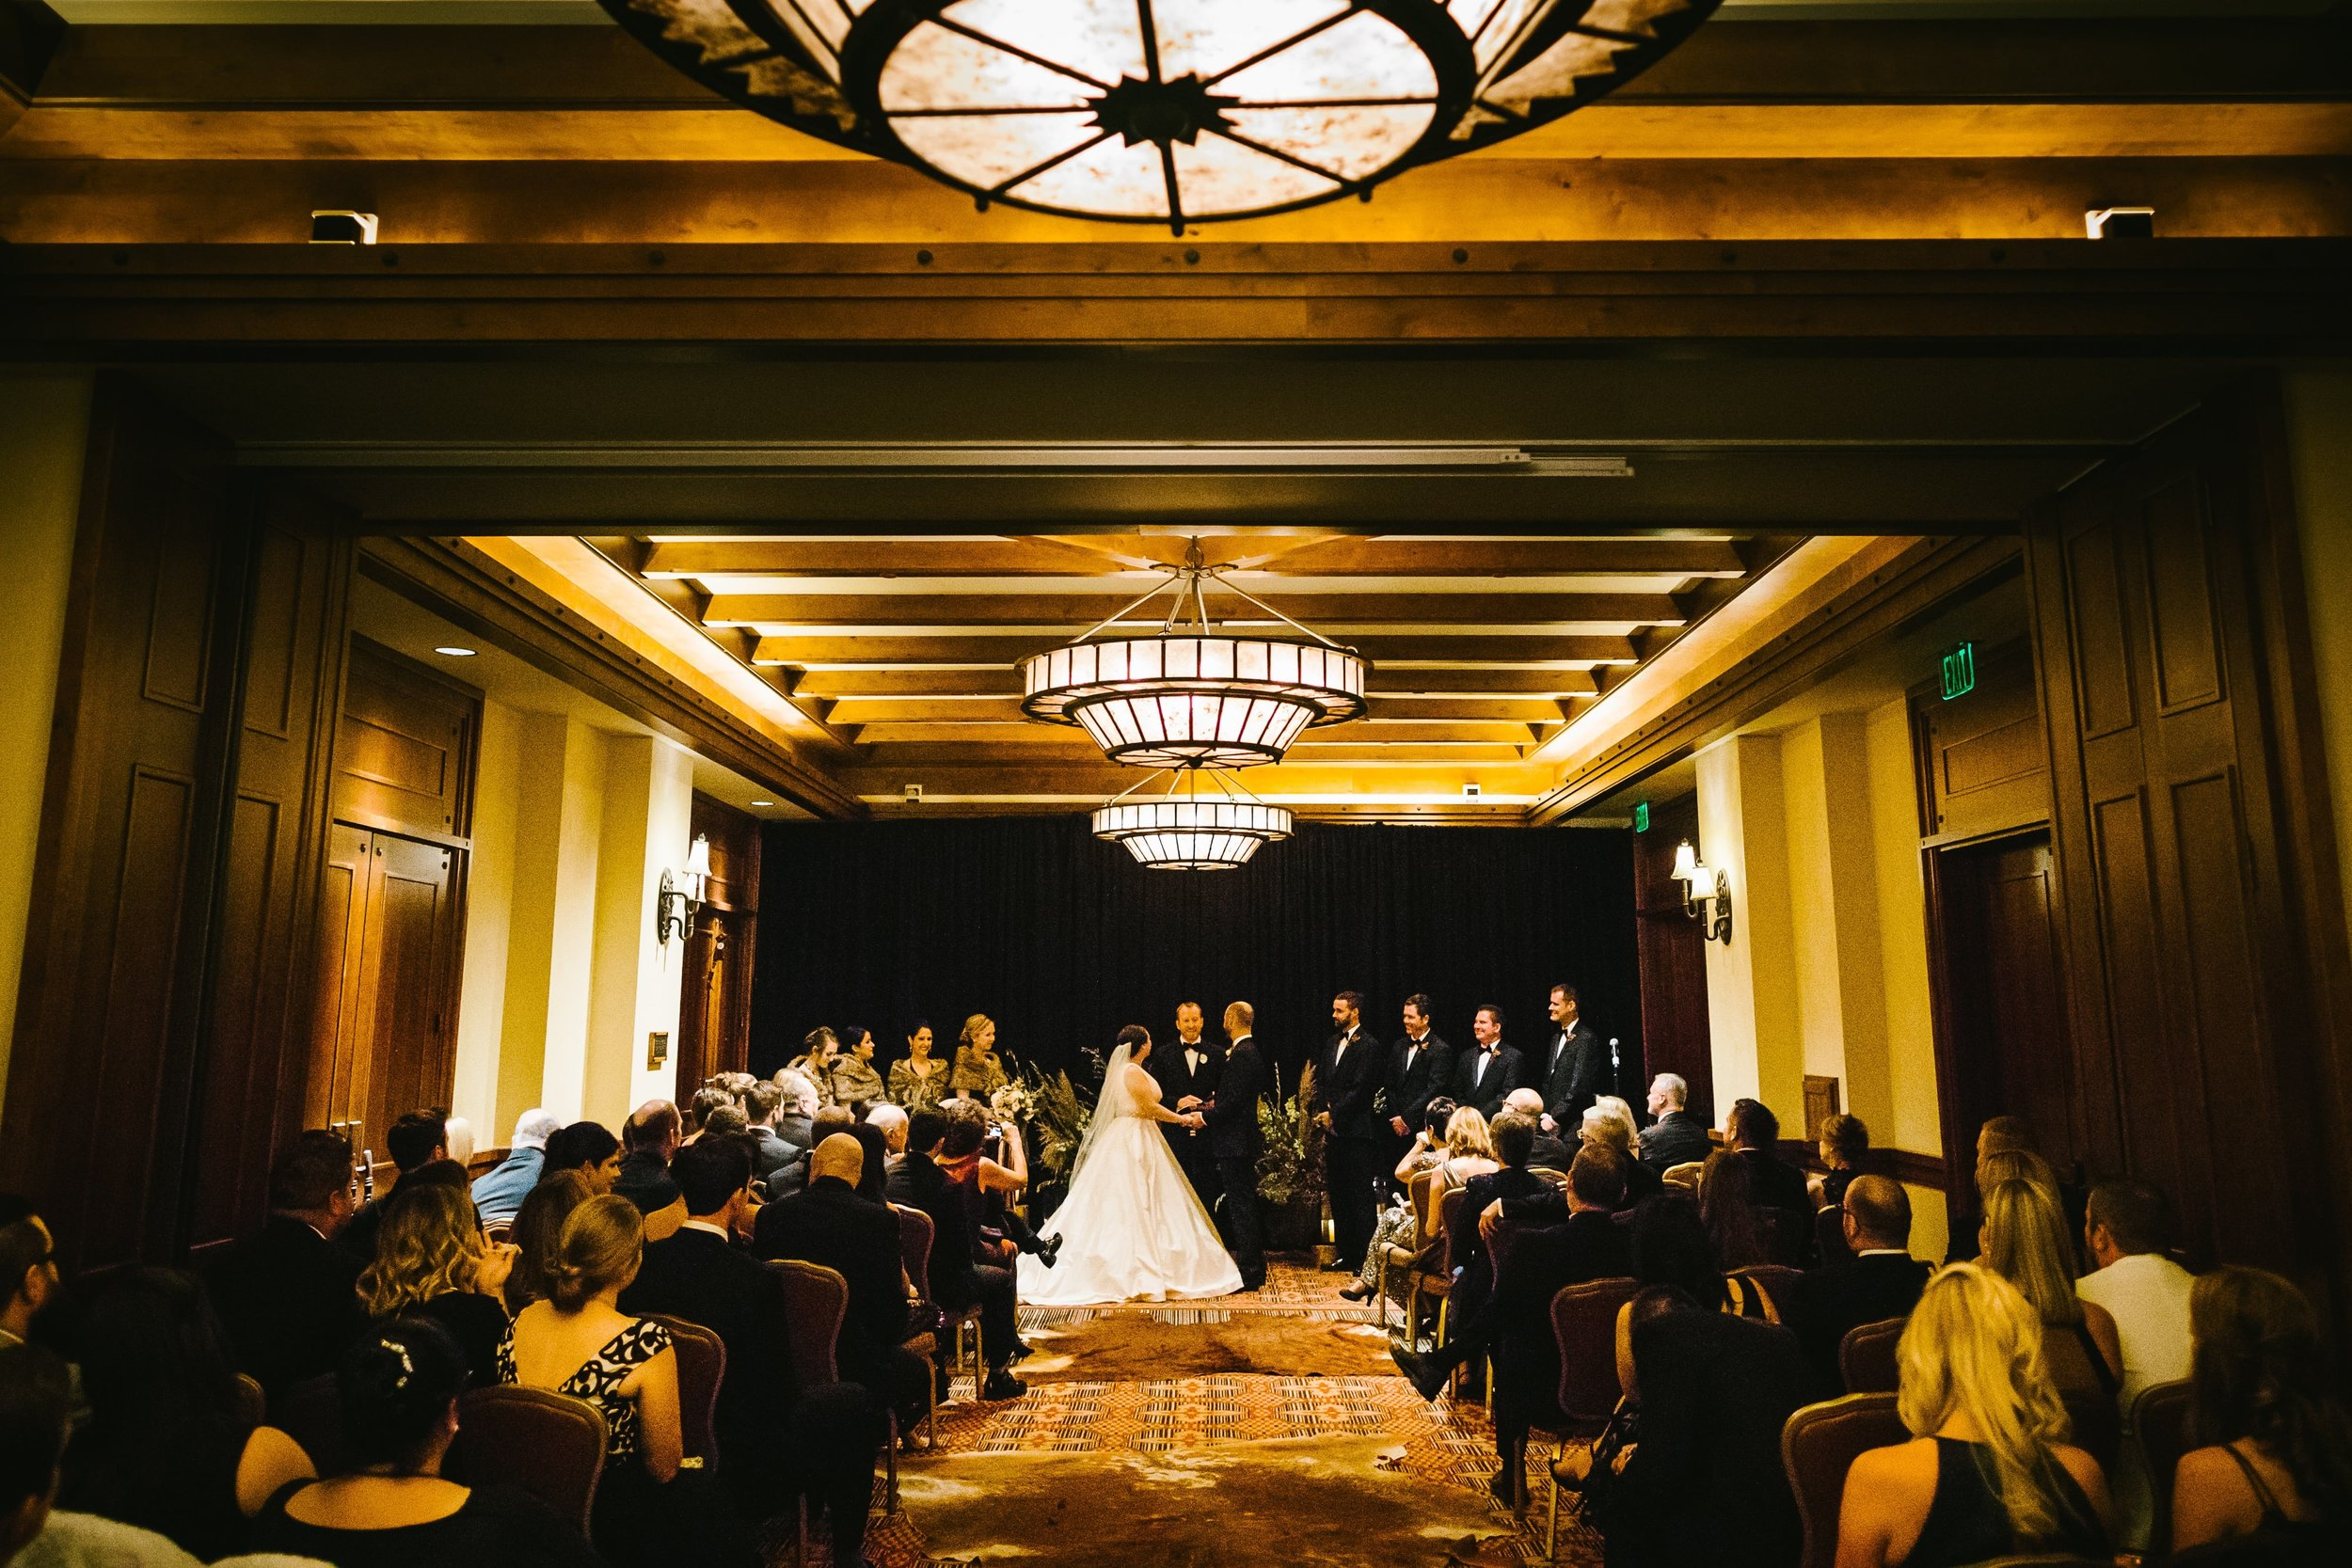 36 Our impromptu ceremony in the Four Seasons ballroom due to rain